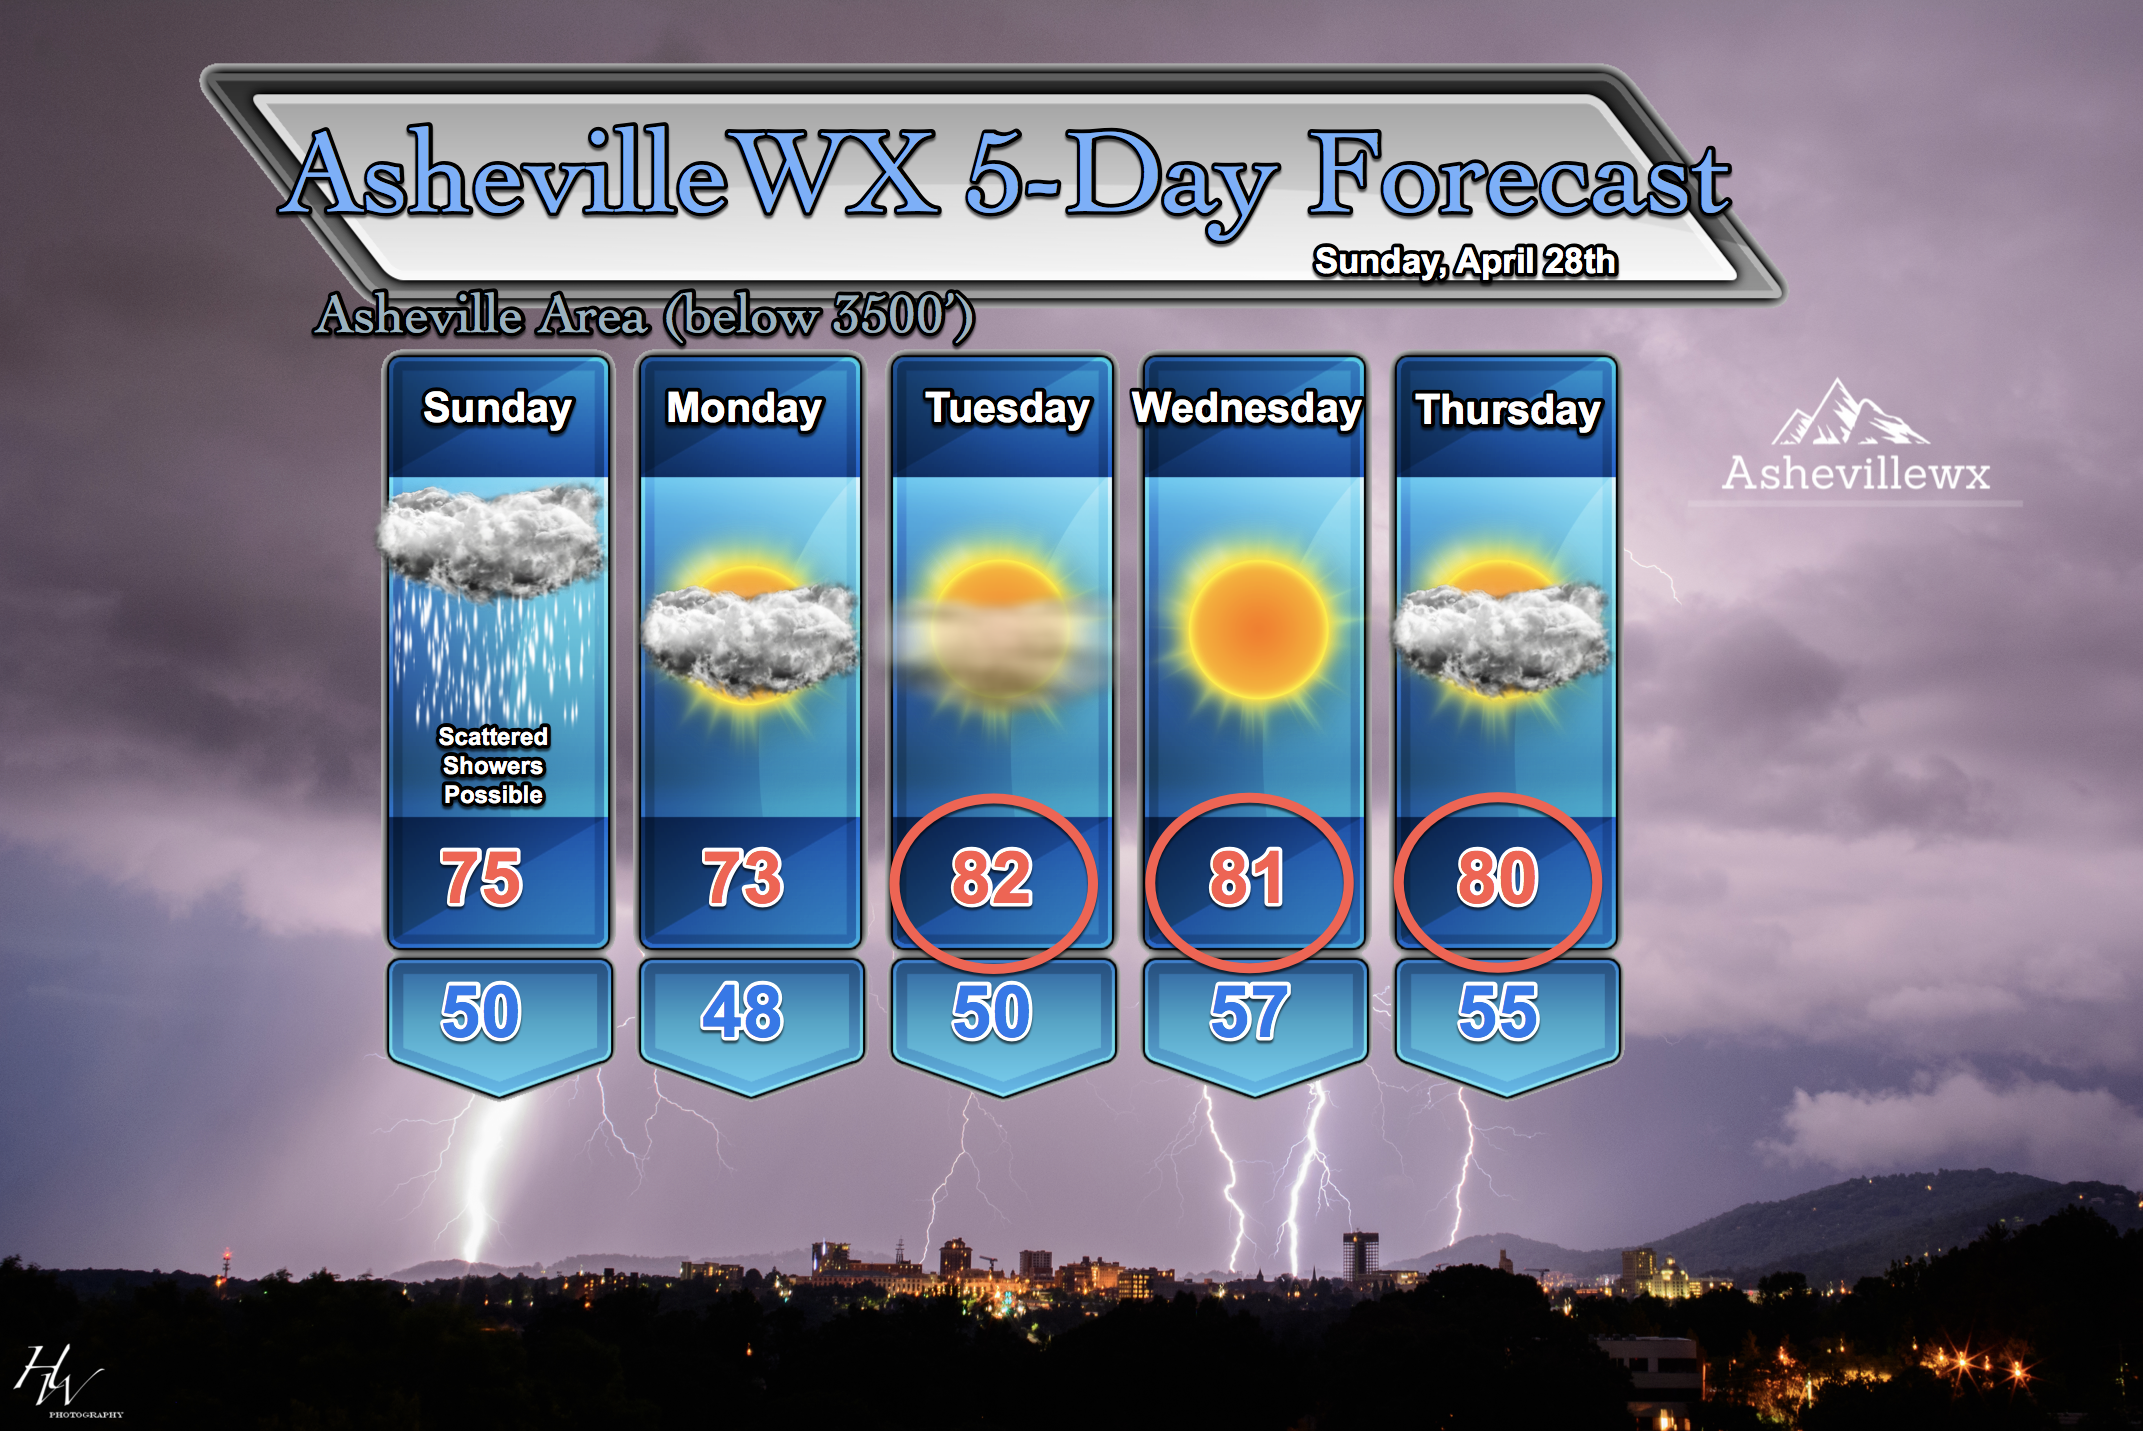 AshevillewxDaily5dayForecastApril28thForArticle.png